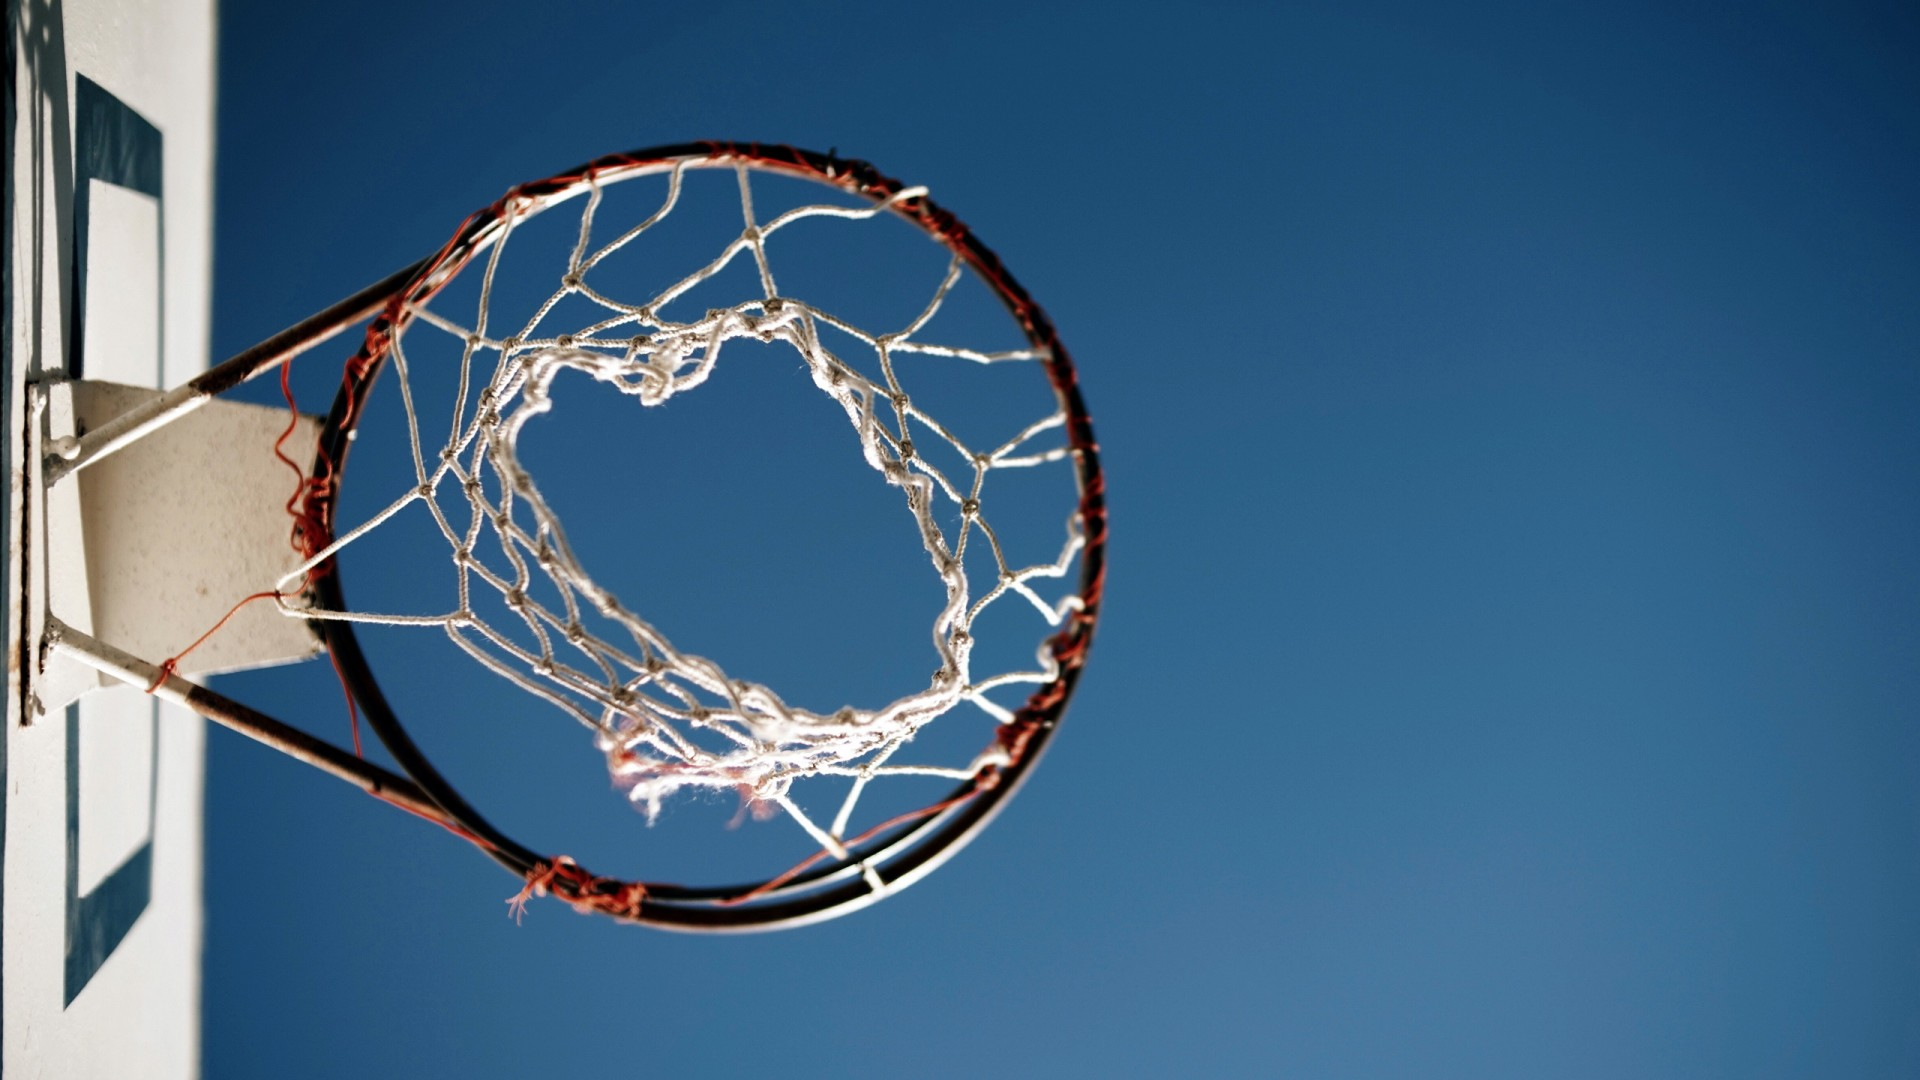 Wallpaper Full Hd 3d Games Basketball Ring Wallpapers Hd Wallpapers Id 14833